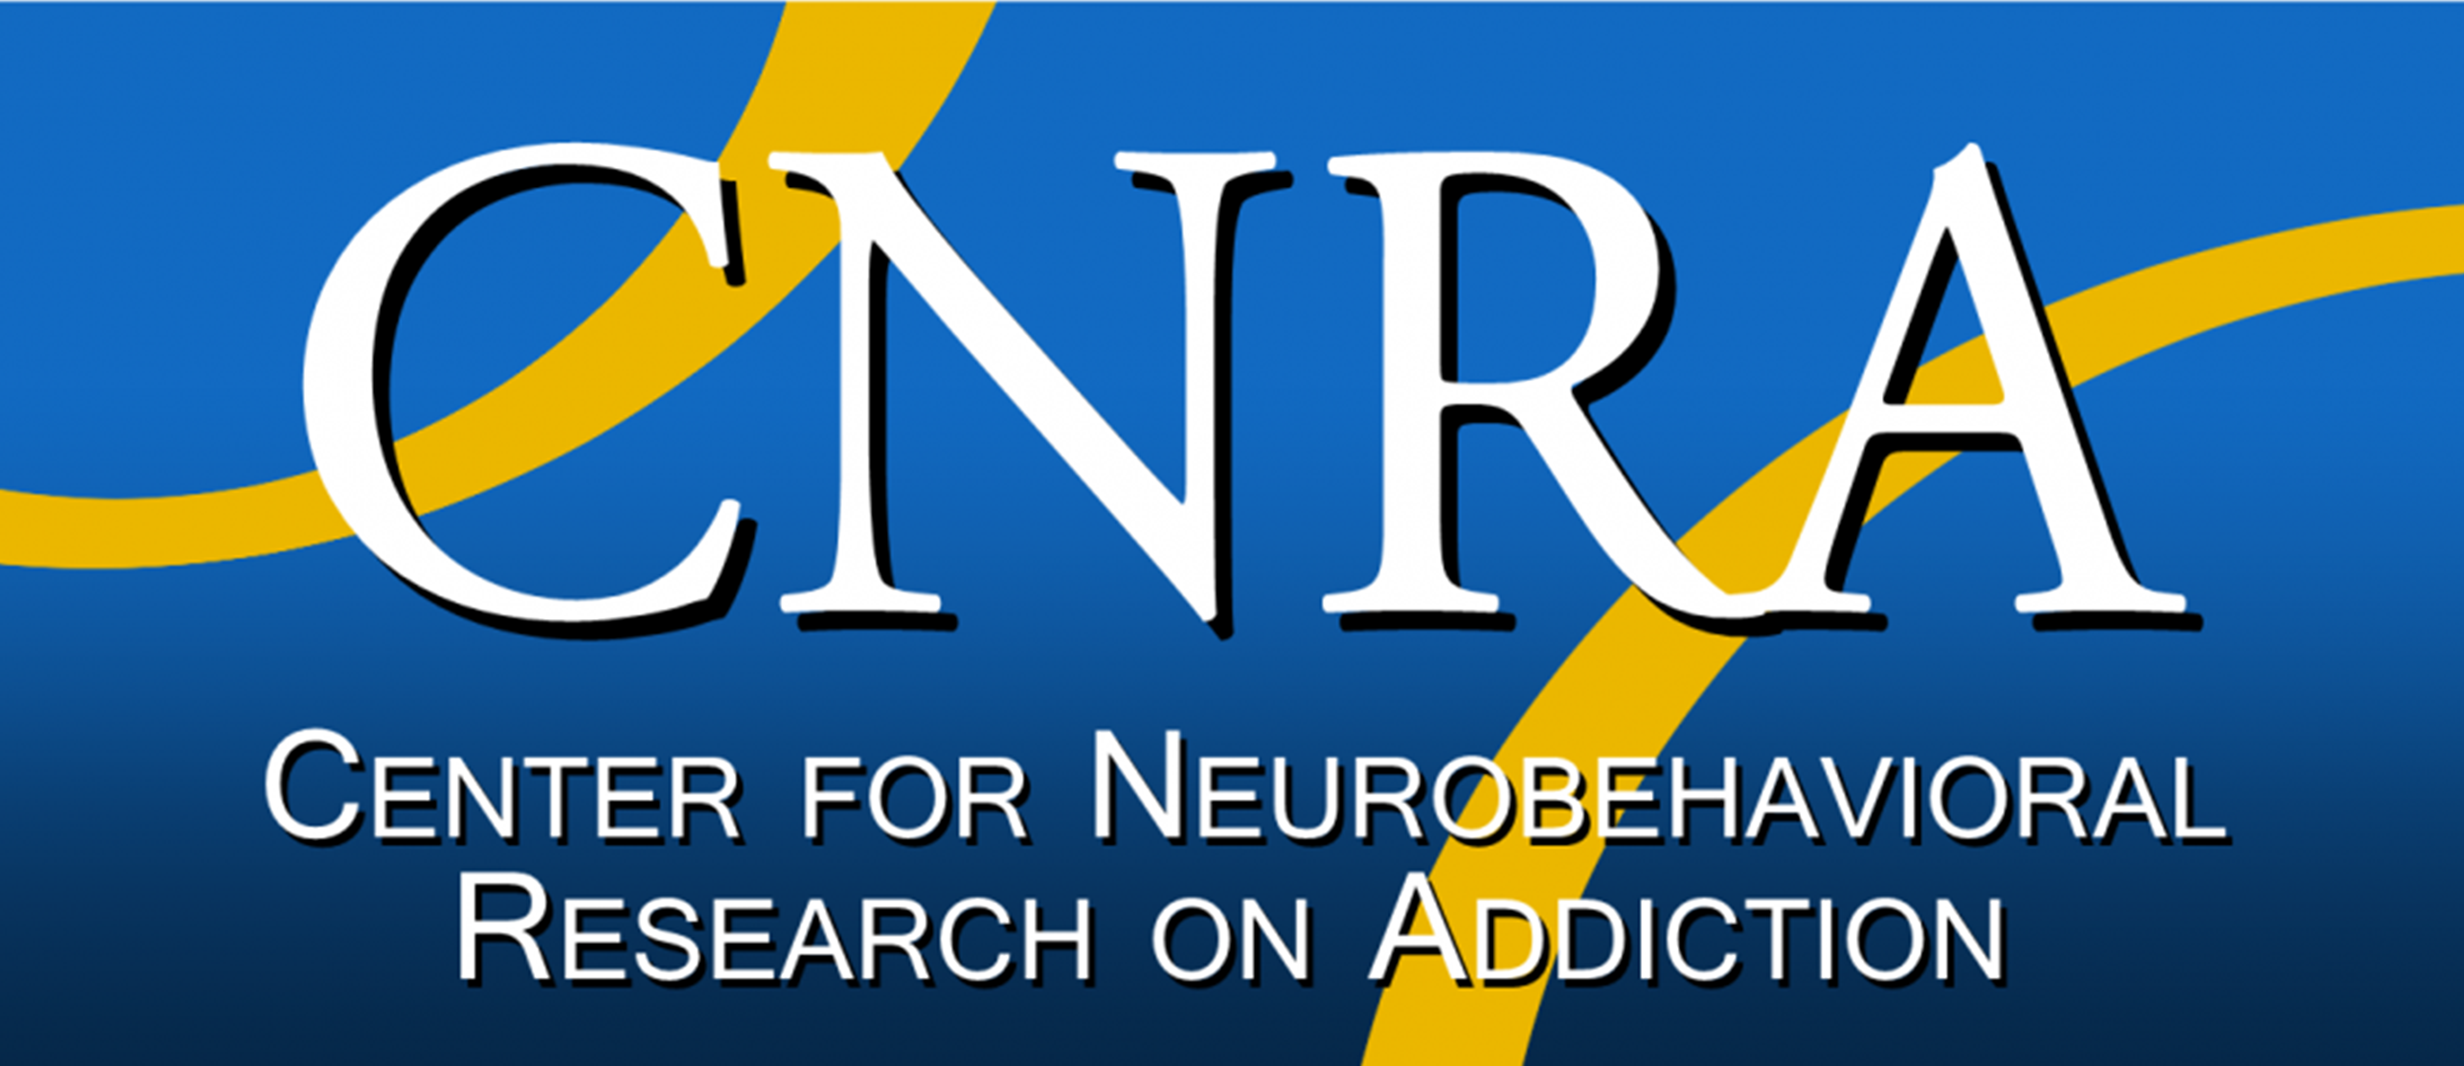 yellow and blue cnra logo